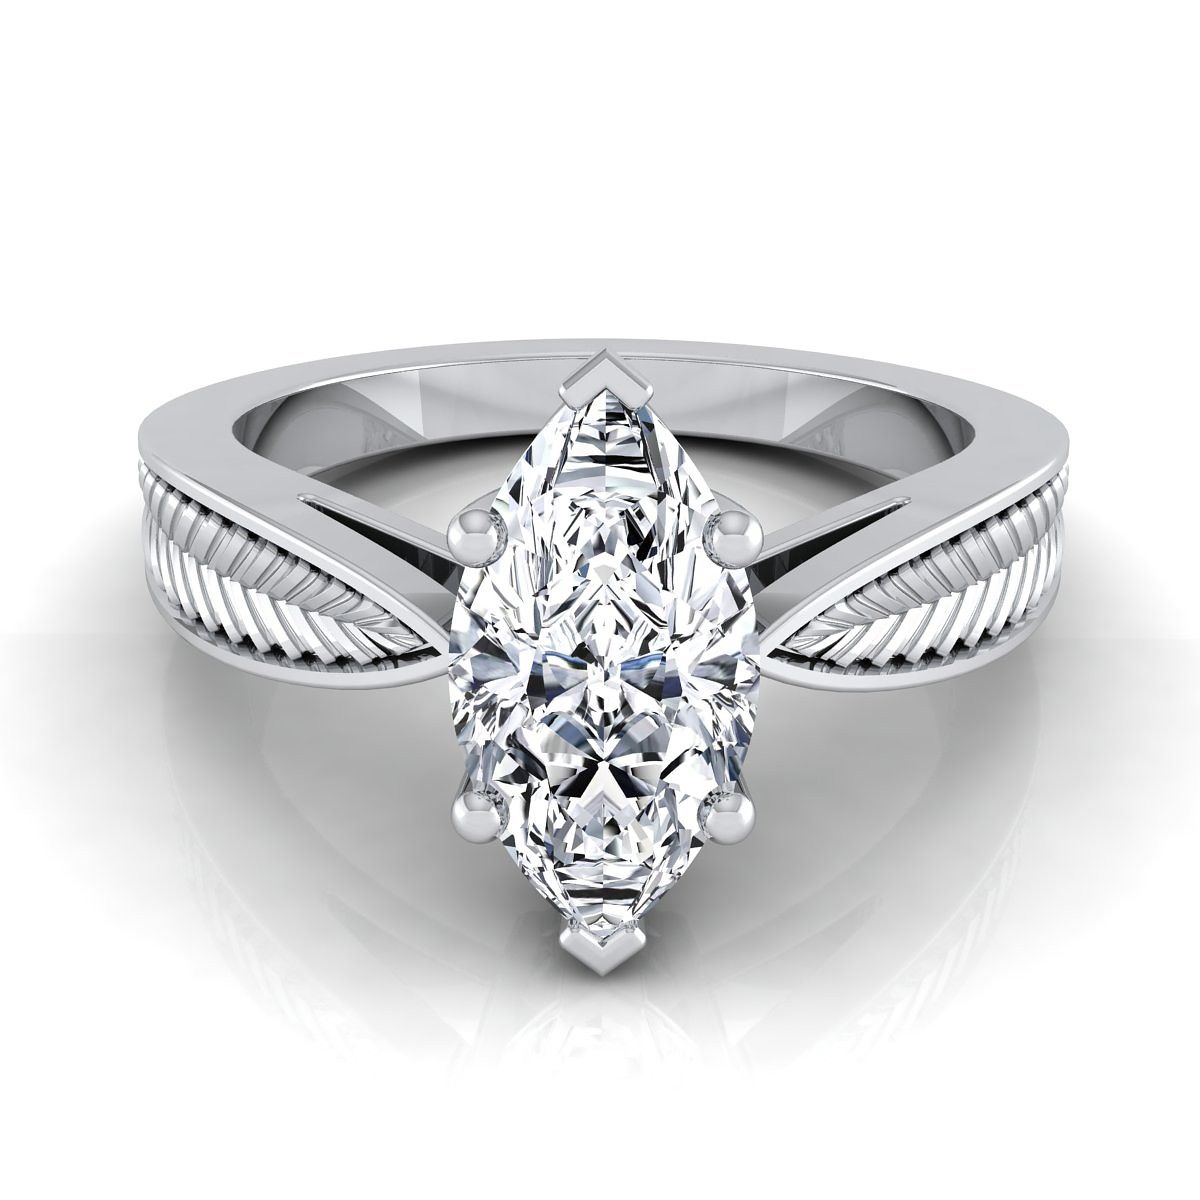 Classic prong marquise diamond engagement ring with leaf texture